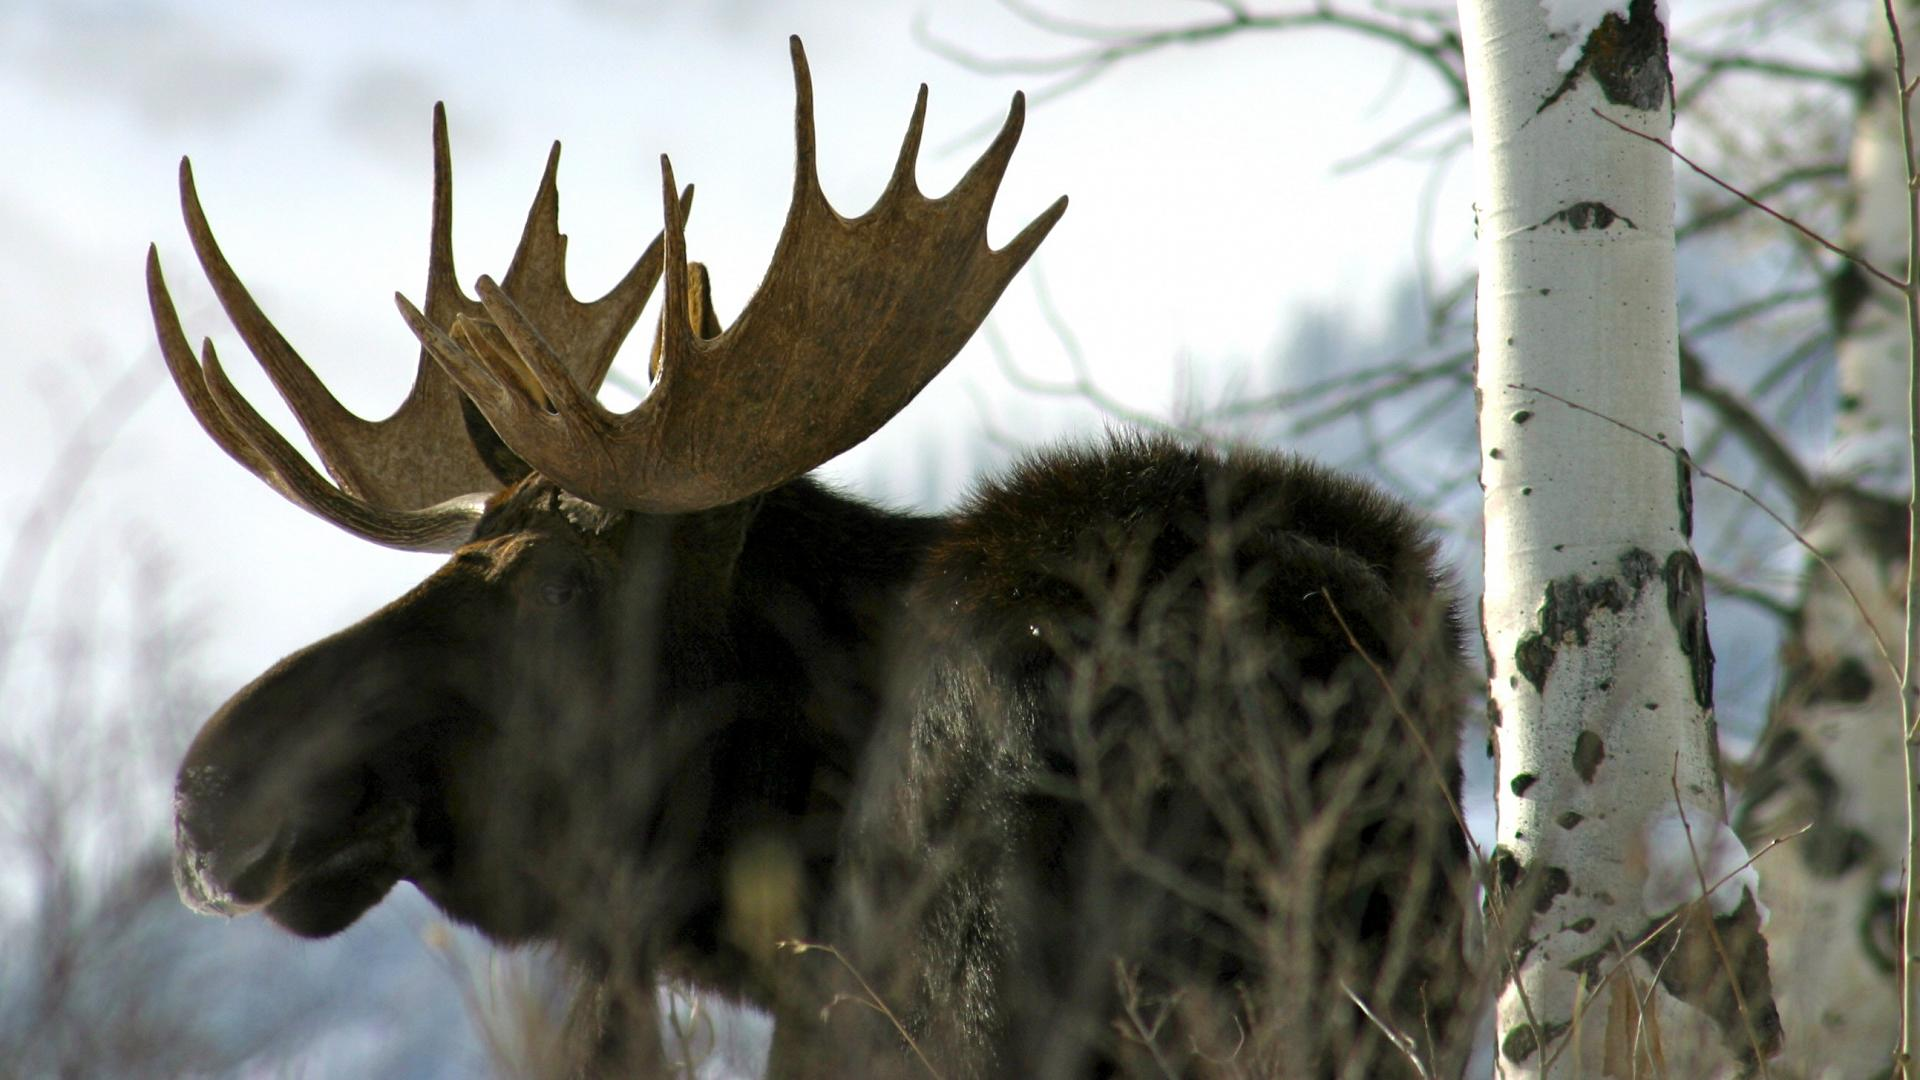 The best cartridges and bullets for toppling big moose